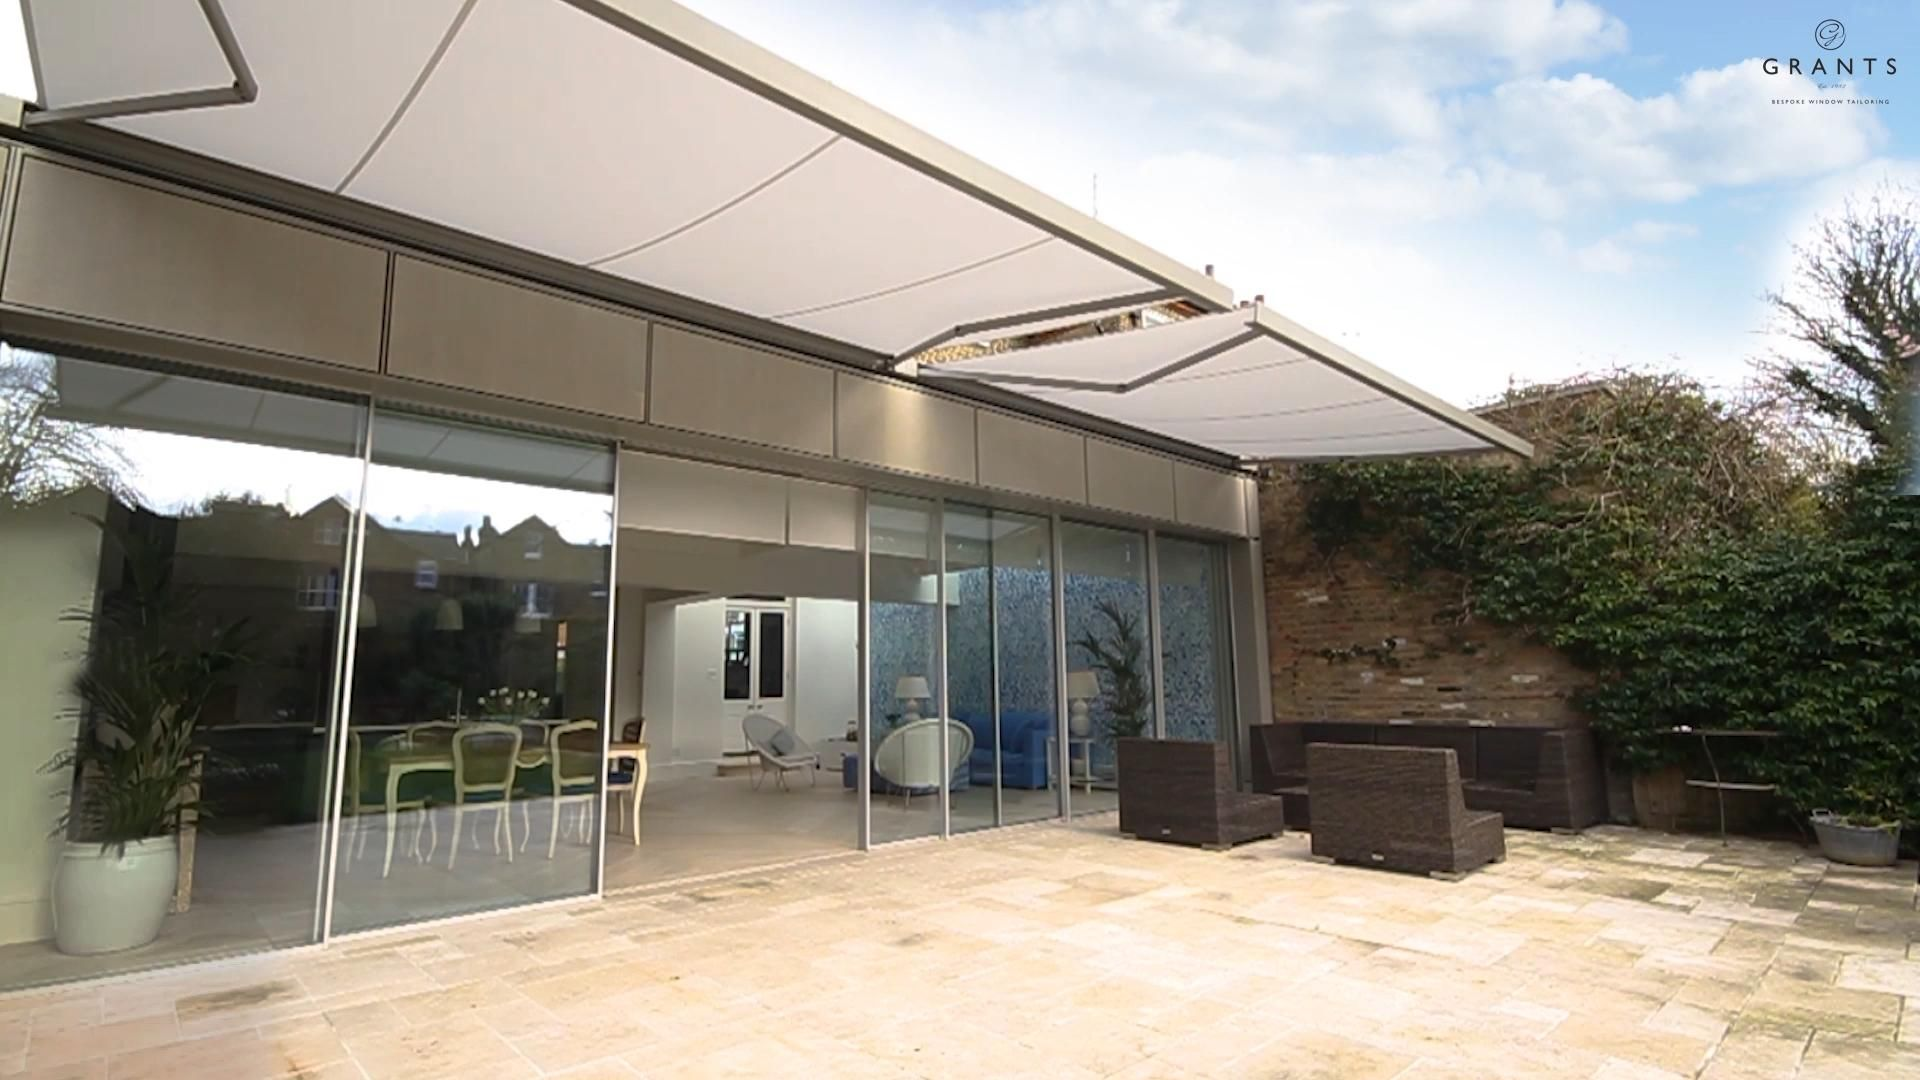 Motorized Patio Awnings Installation By Grants Blinds Video In 2020 Patio Awning Awning Installation Outdoor Living Patio